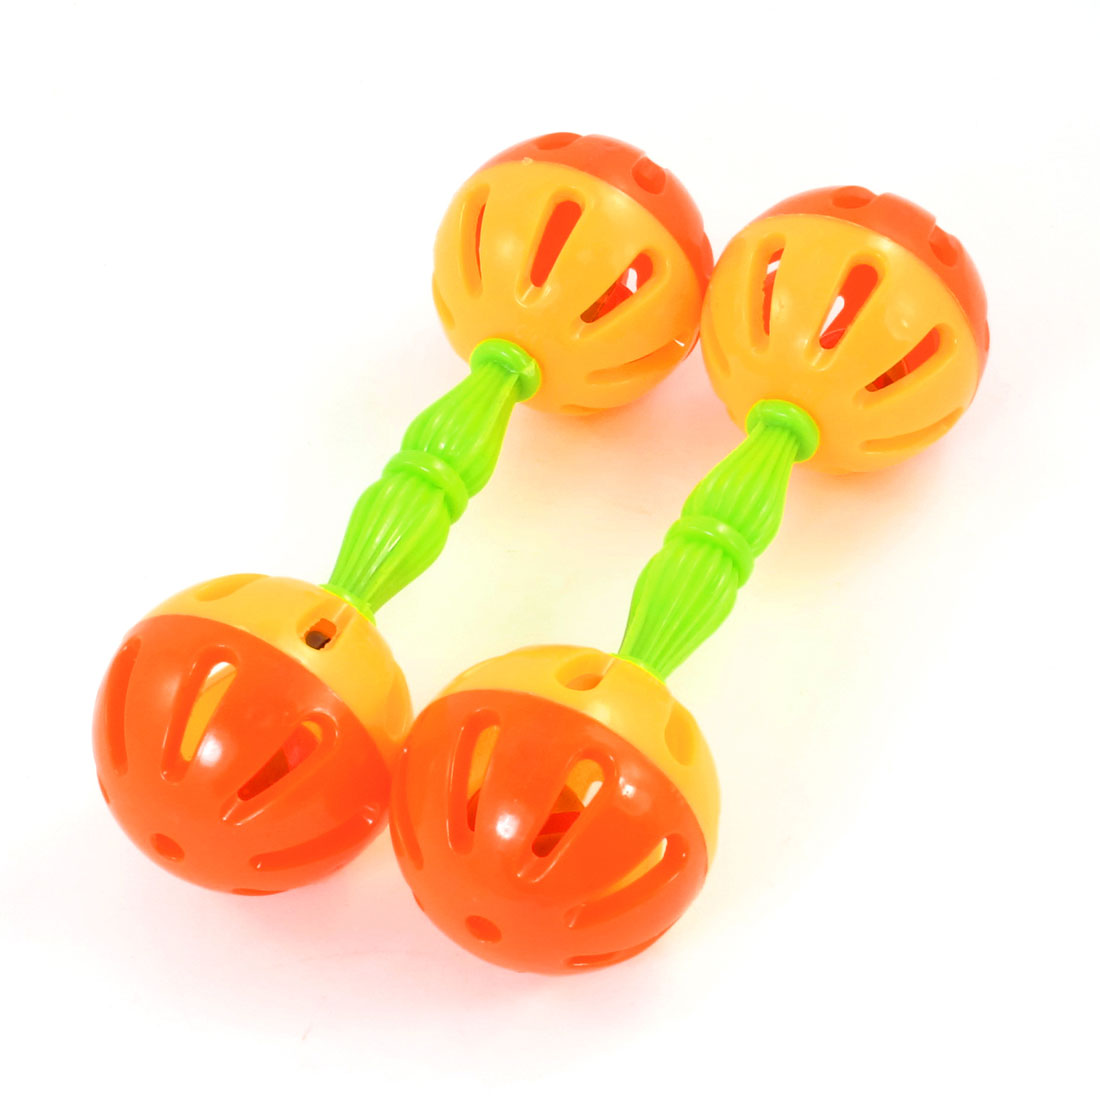 "2 Pcs Kids Two Balls Handle Shaker Hand Shaking Bell Toy 6.5"" Long Orange Yellow"